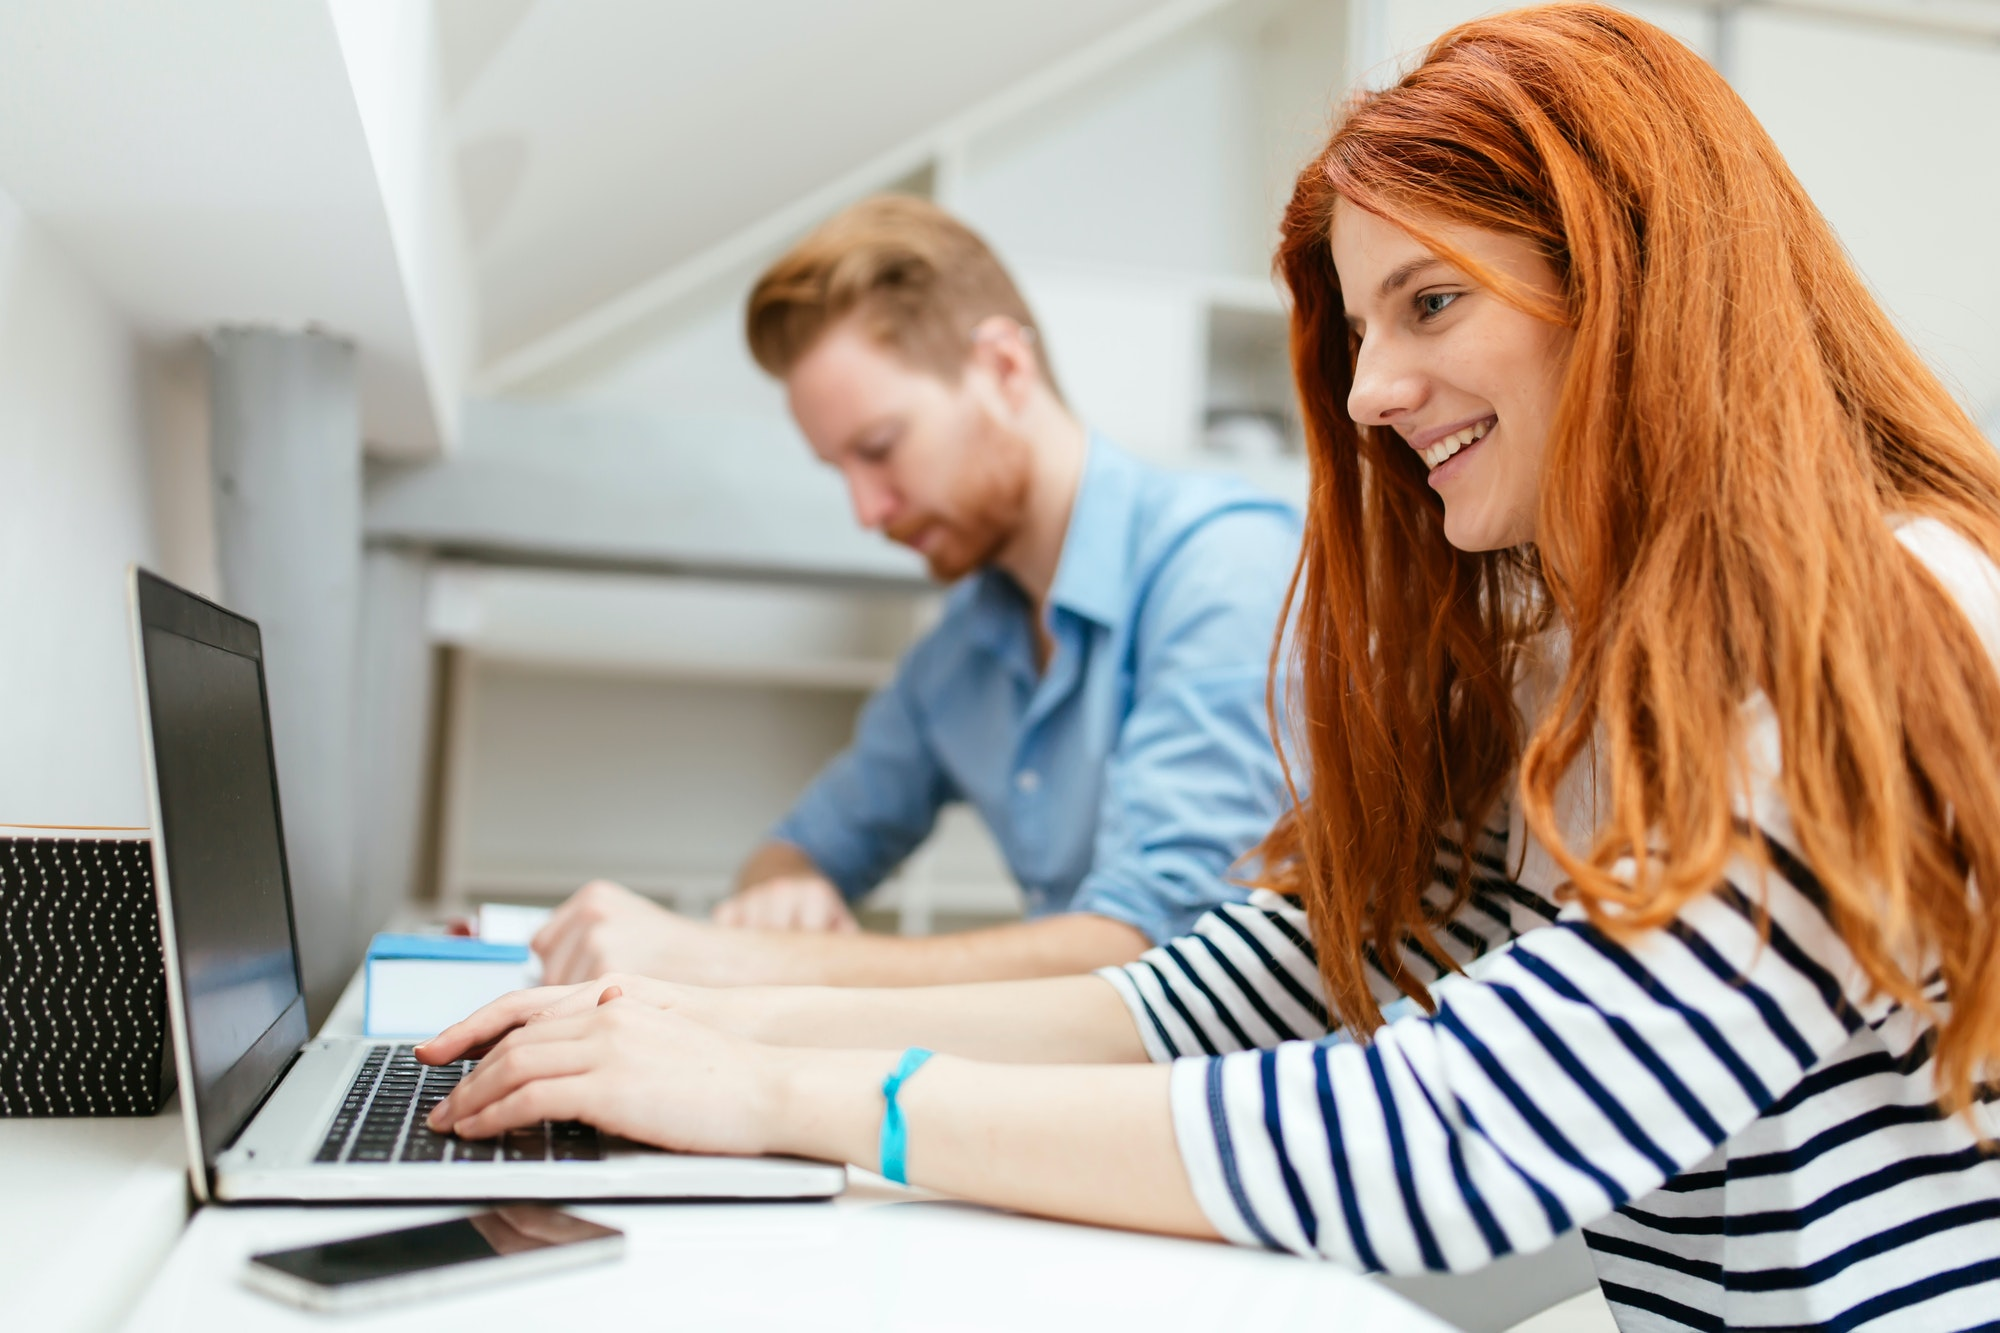 A husband and wife working from home on their laptops